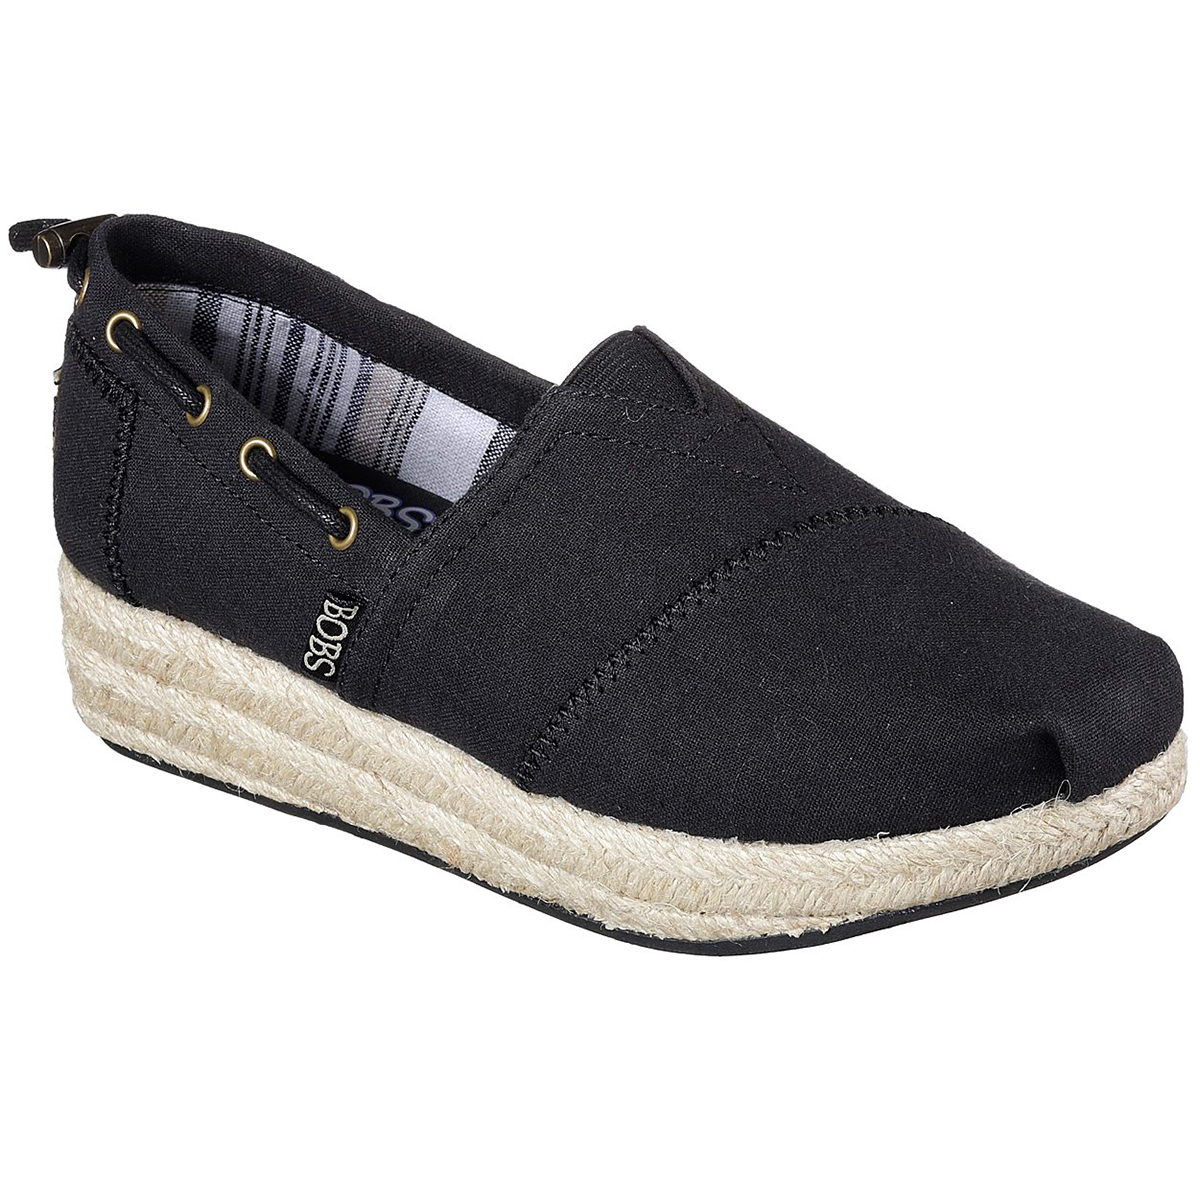 Skechers Women's Bobs Highlights Set Sail Casual Shoes - Black, 7.5